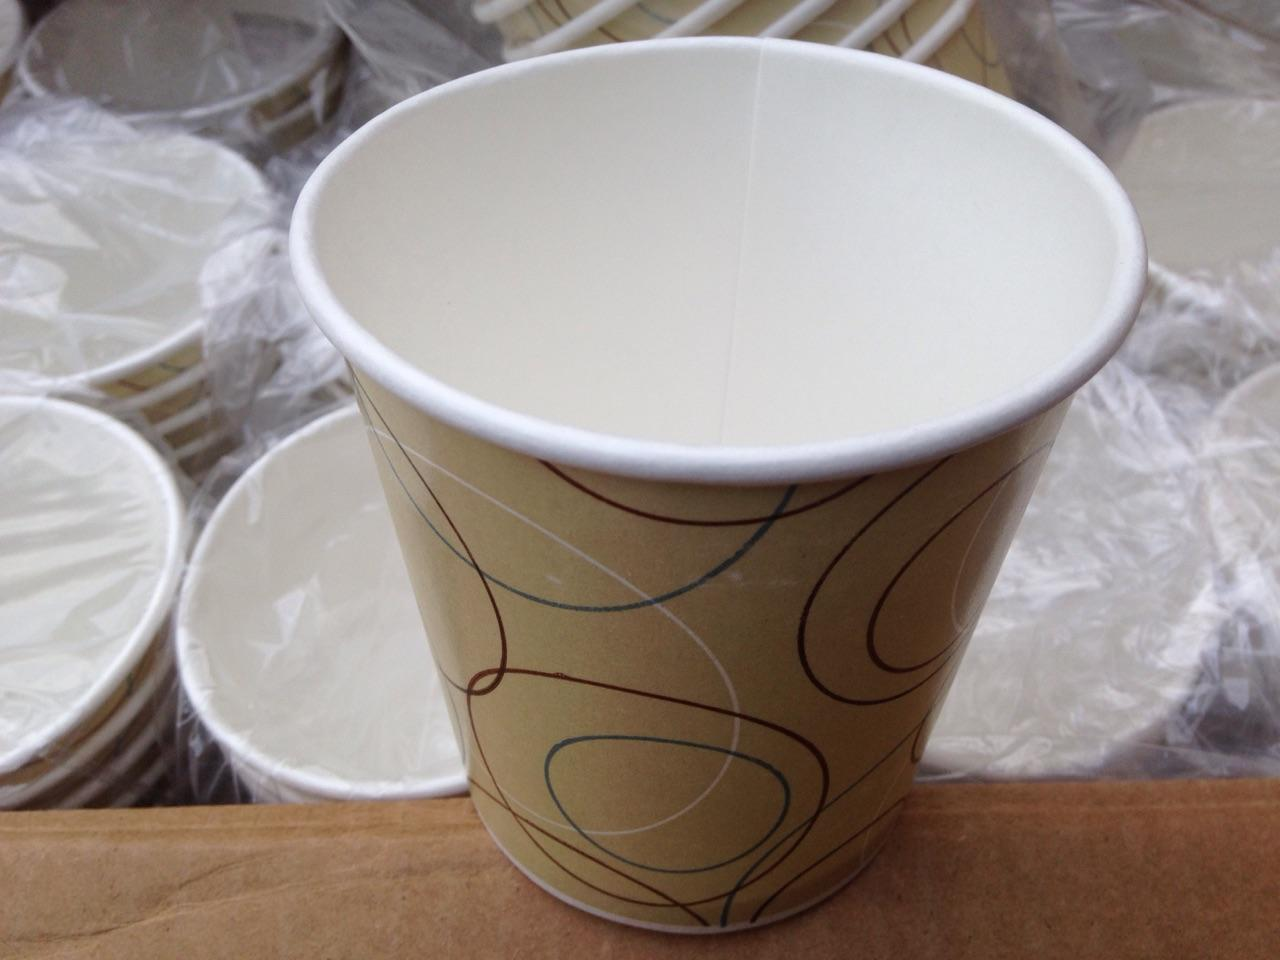 Heavy Duty Soup, Ice Cream, Stew Containers Disposable